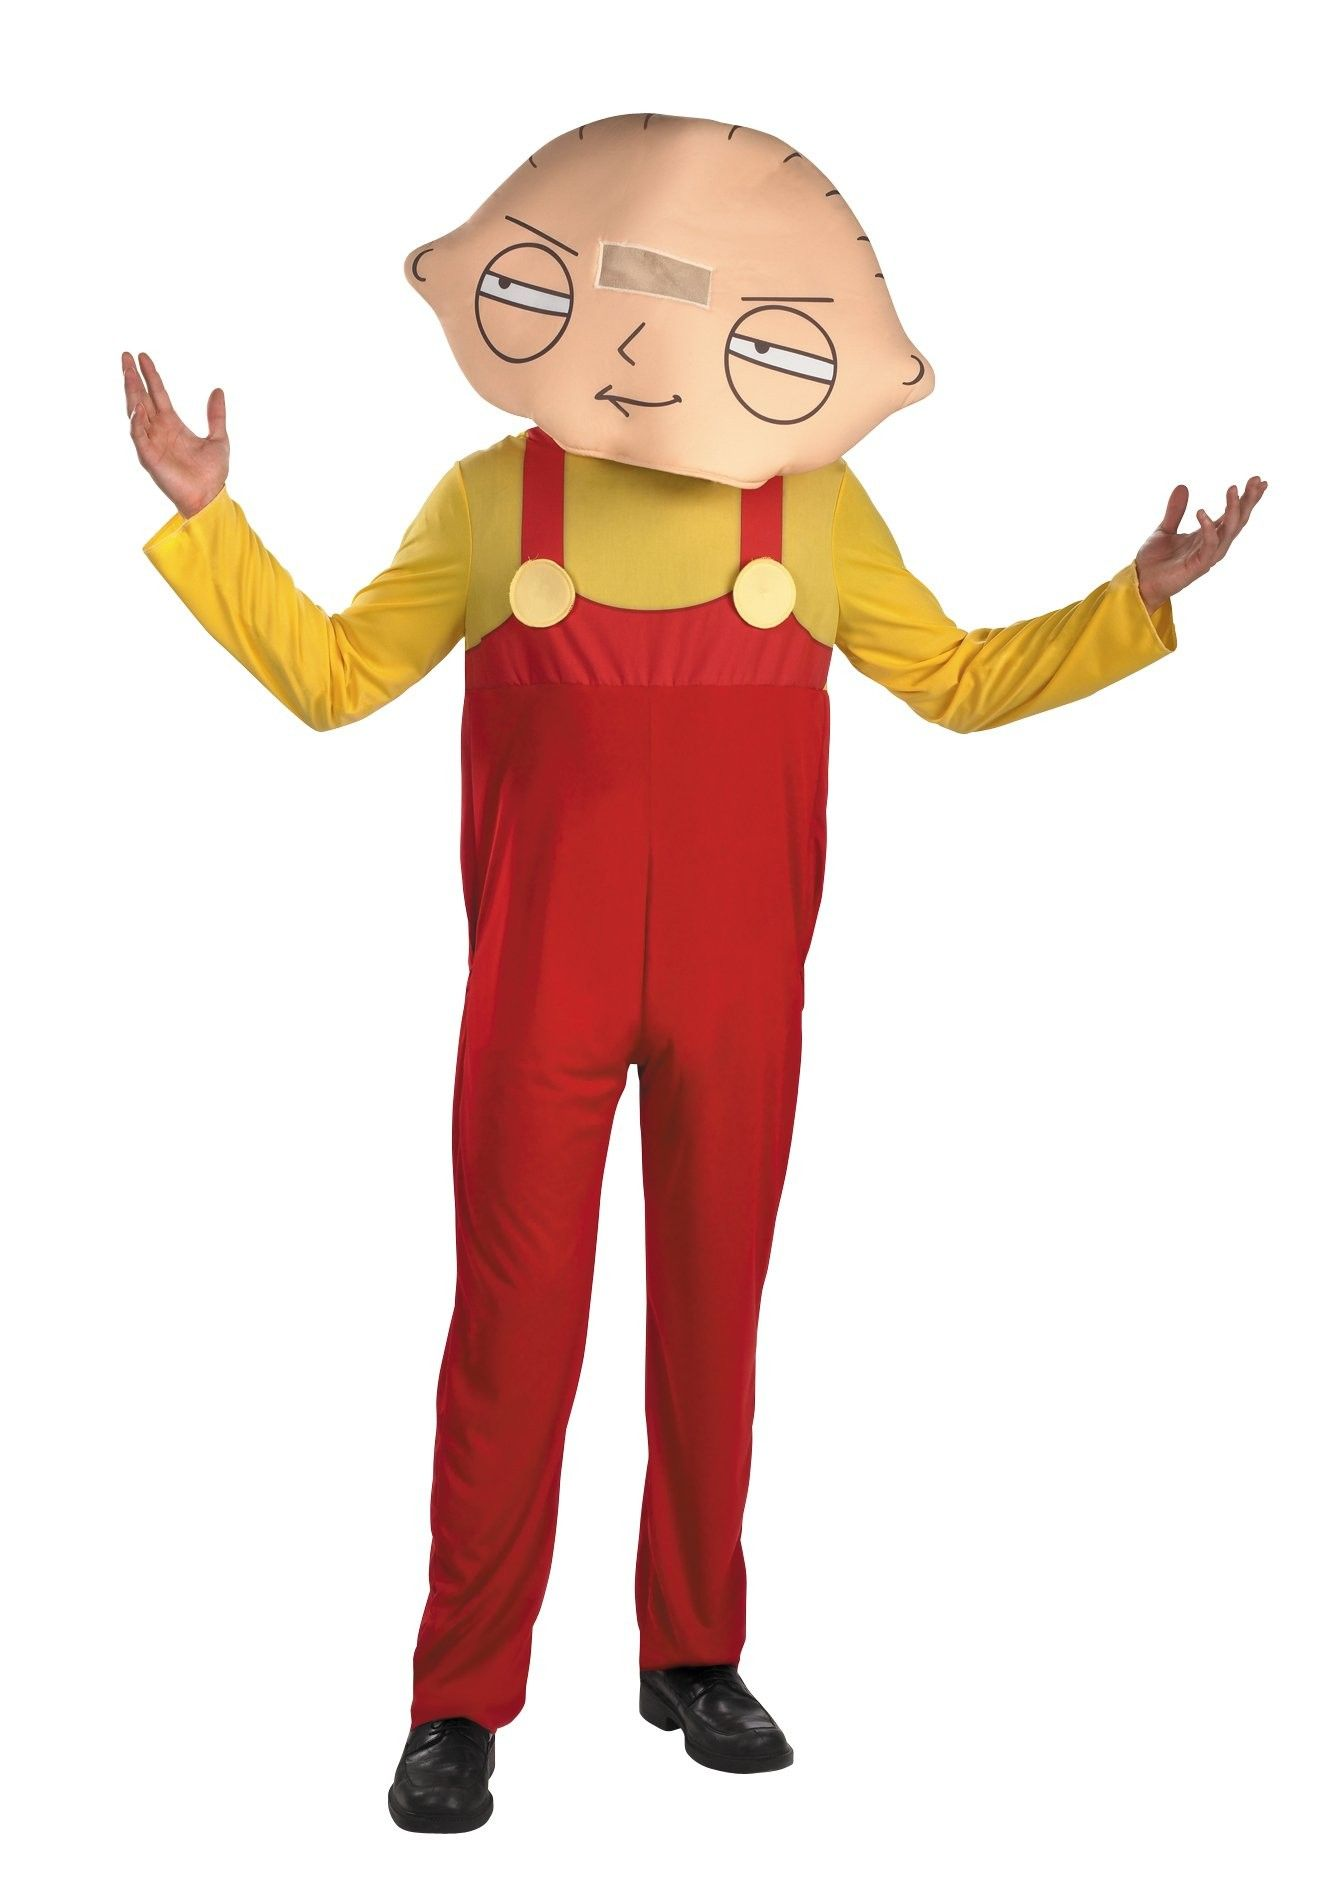 Family Guy Stewie Teen Costume The Includes Jump Suit. Funny Halloween Costume Ideas ...  sc 1 st  Wallsviews.co & Funny Halloween Costume Ideas For Teenage Guys | Wallsviews.co